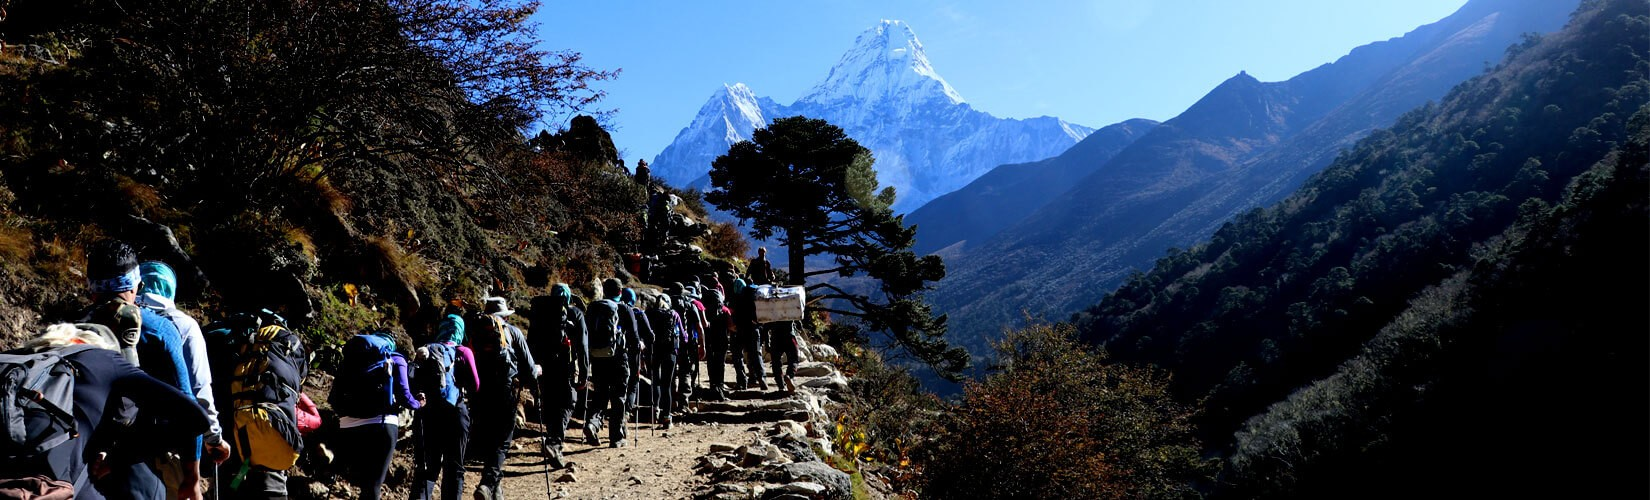 Group Walking Through Pangboche Stupa